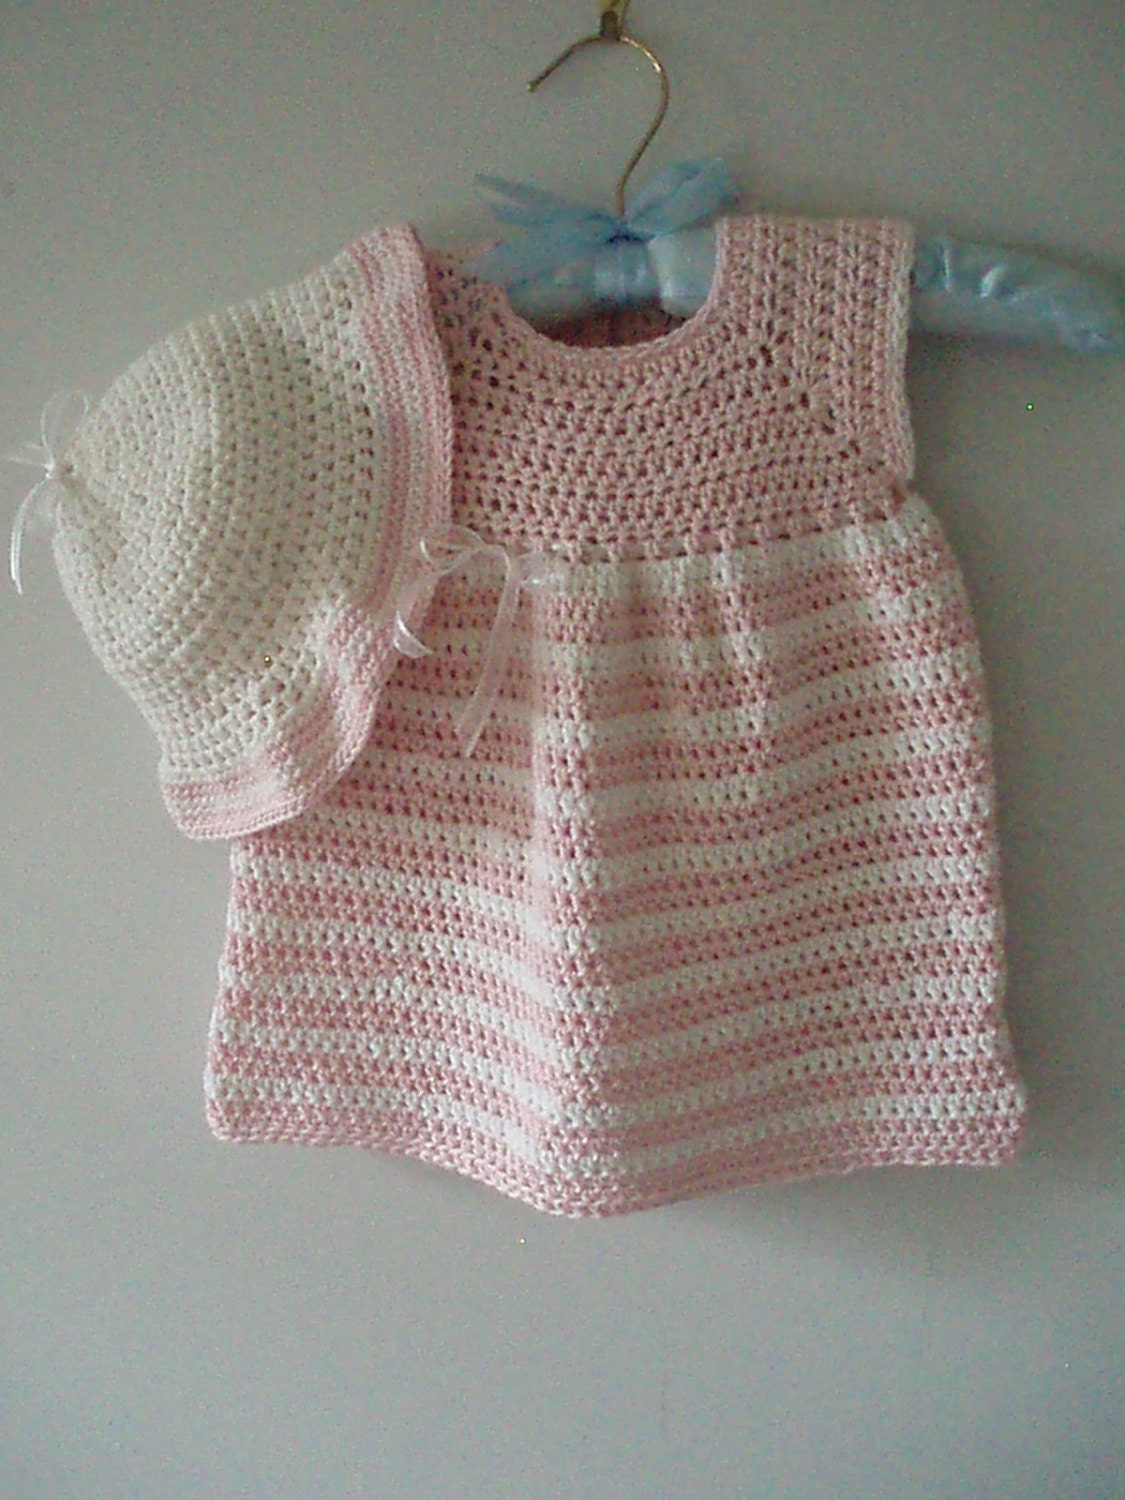 Baby Crochet Patterns For Summer : Crochet Pattern for a Summer Dress and Sunhat for Babies and